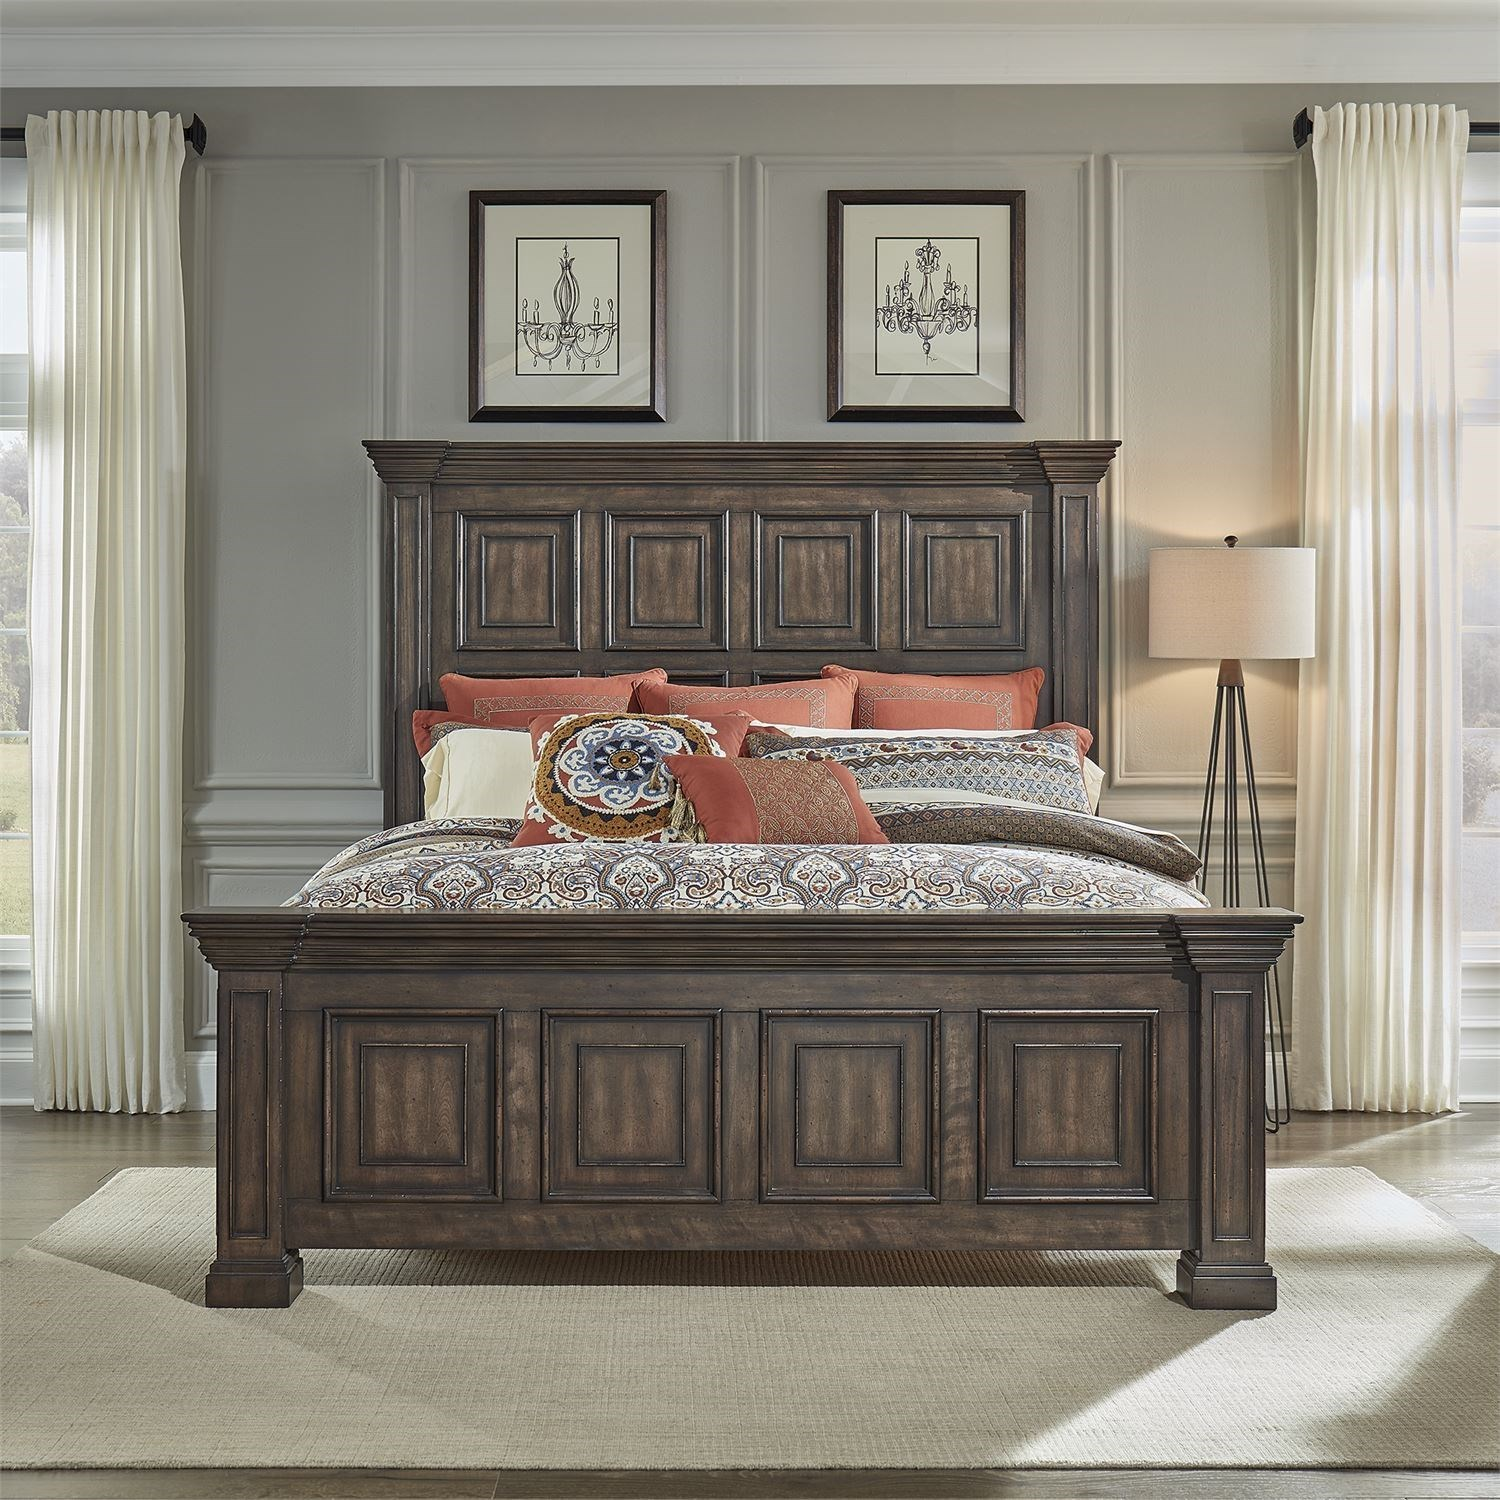 Big Valley King Panel Bed by Liberty Furniture at Zak's Home